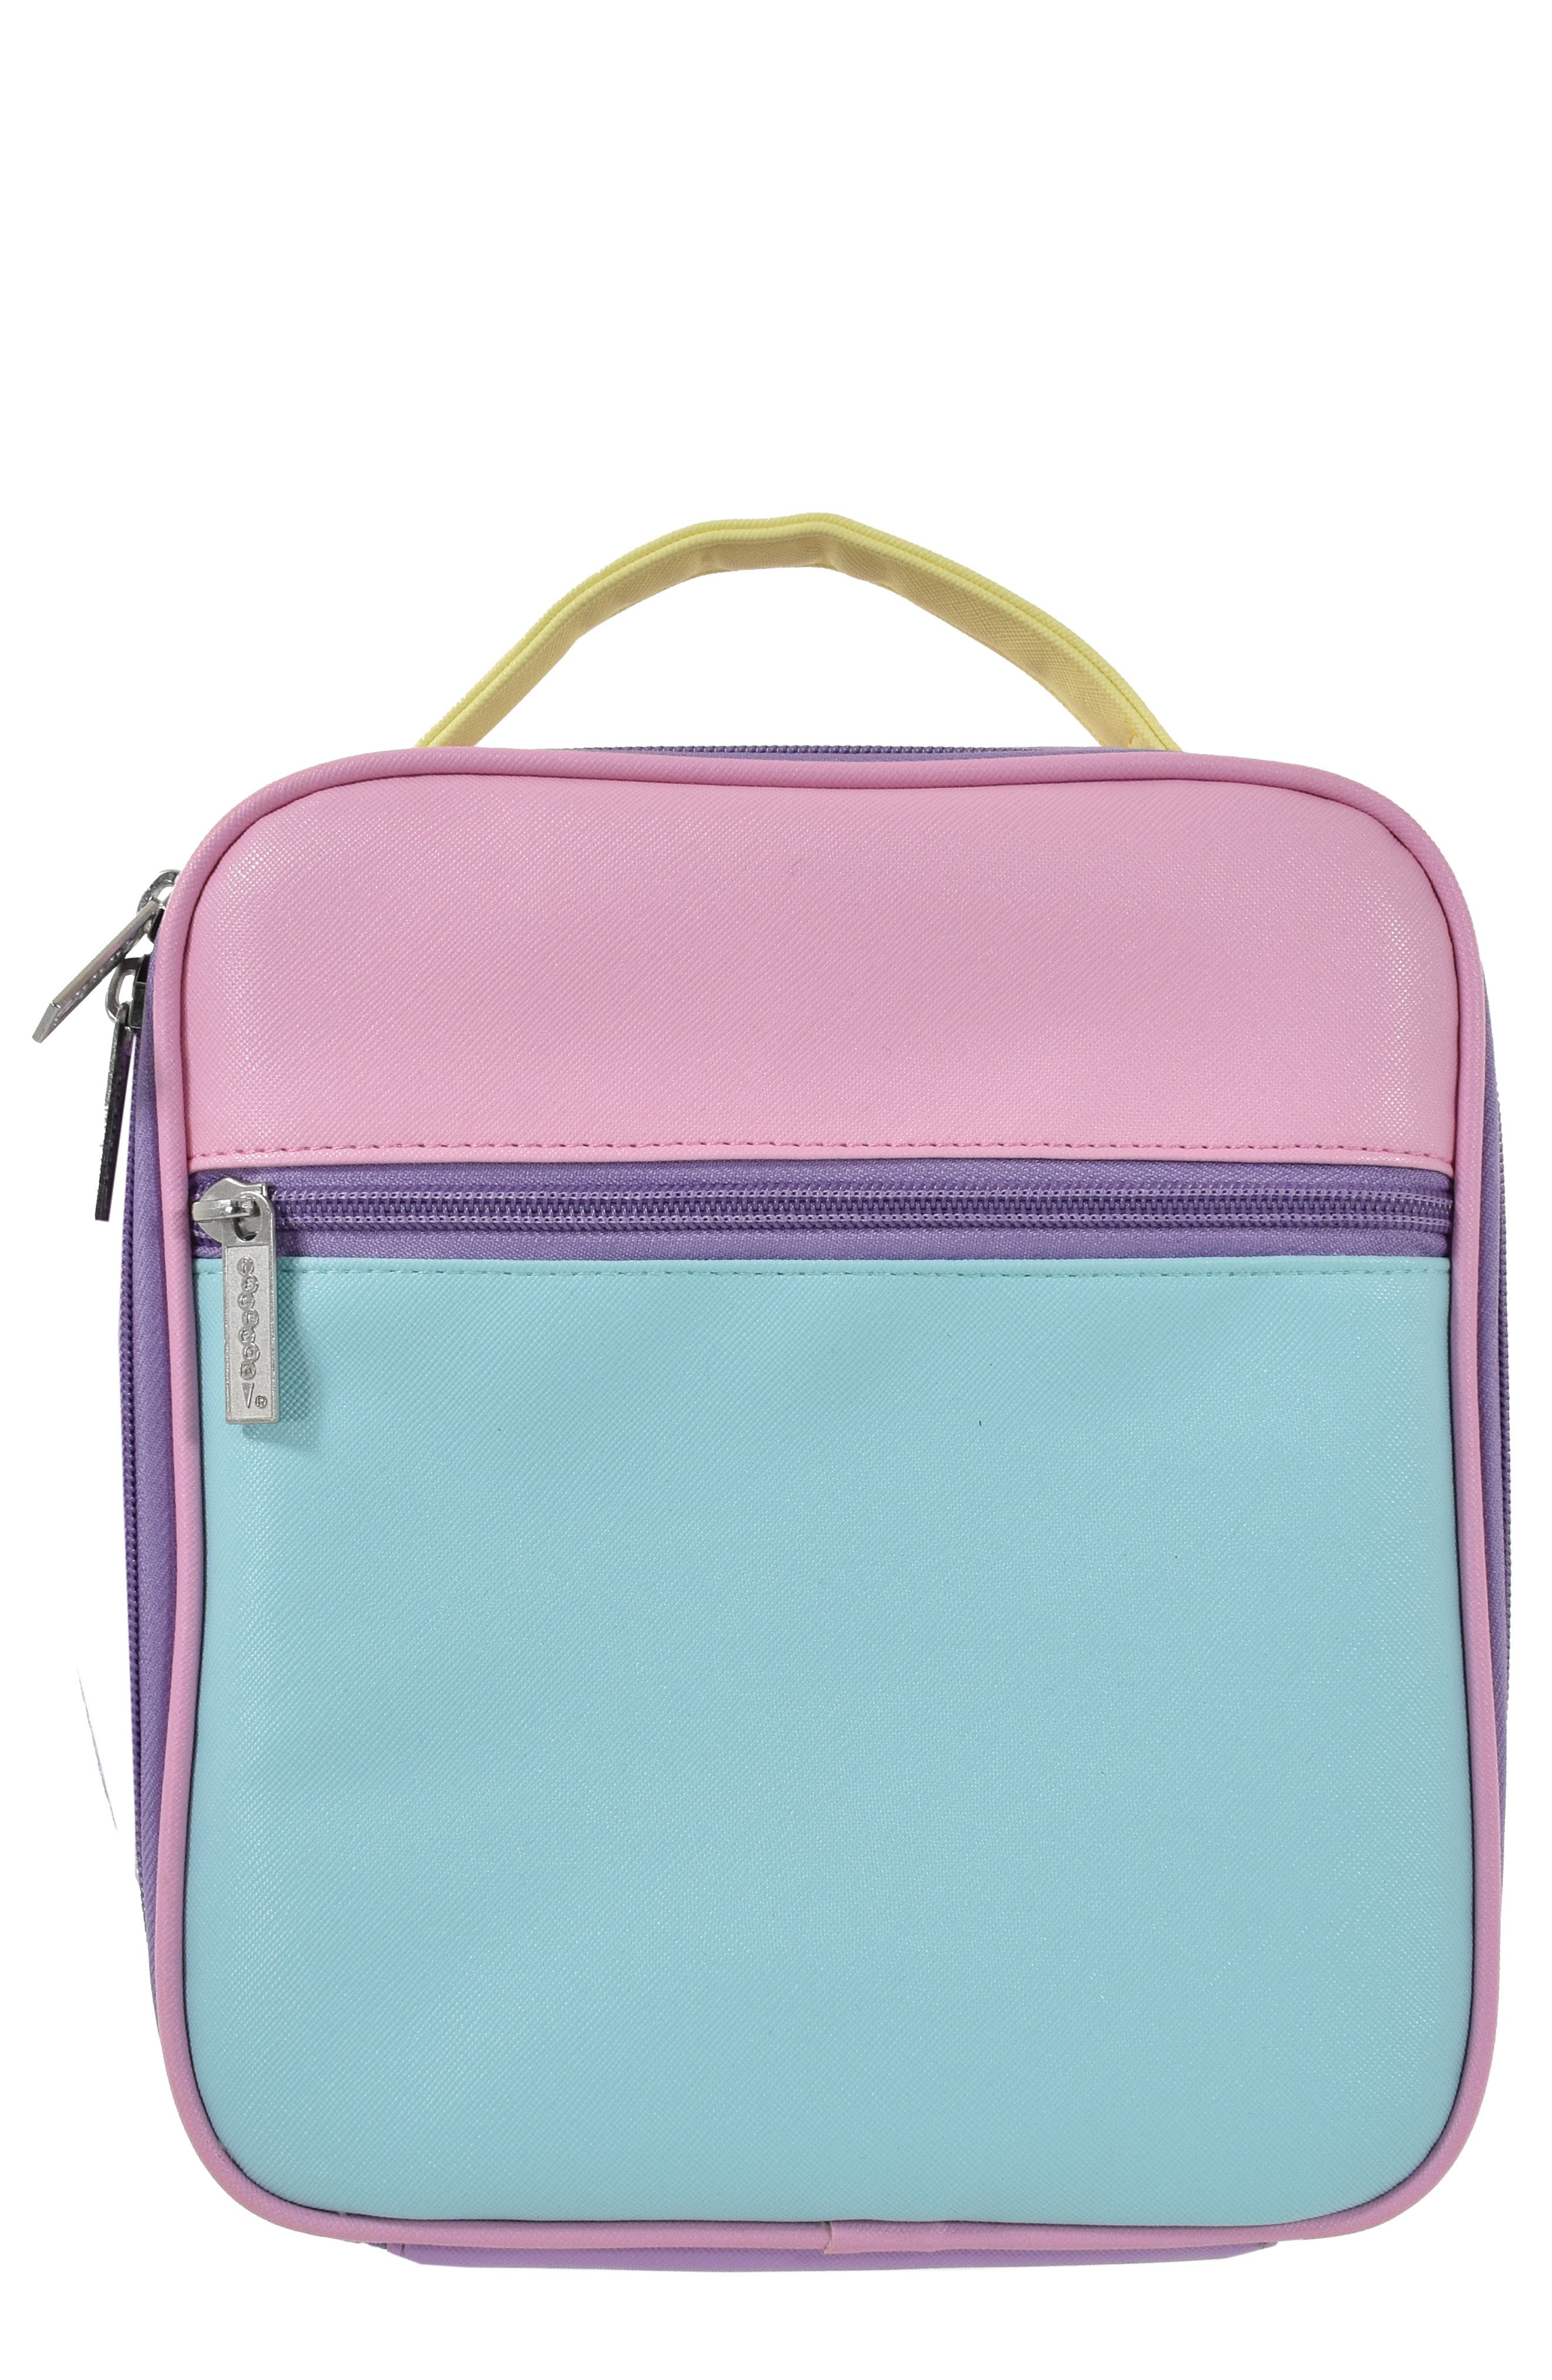 Colorblock Insulated Lunch Tote